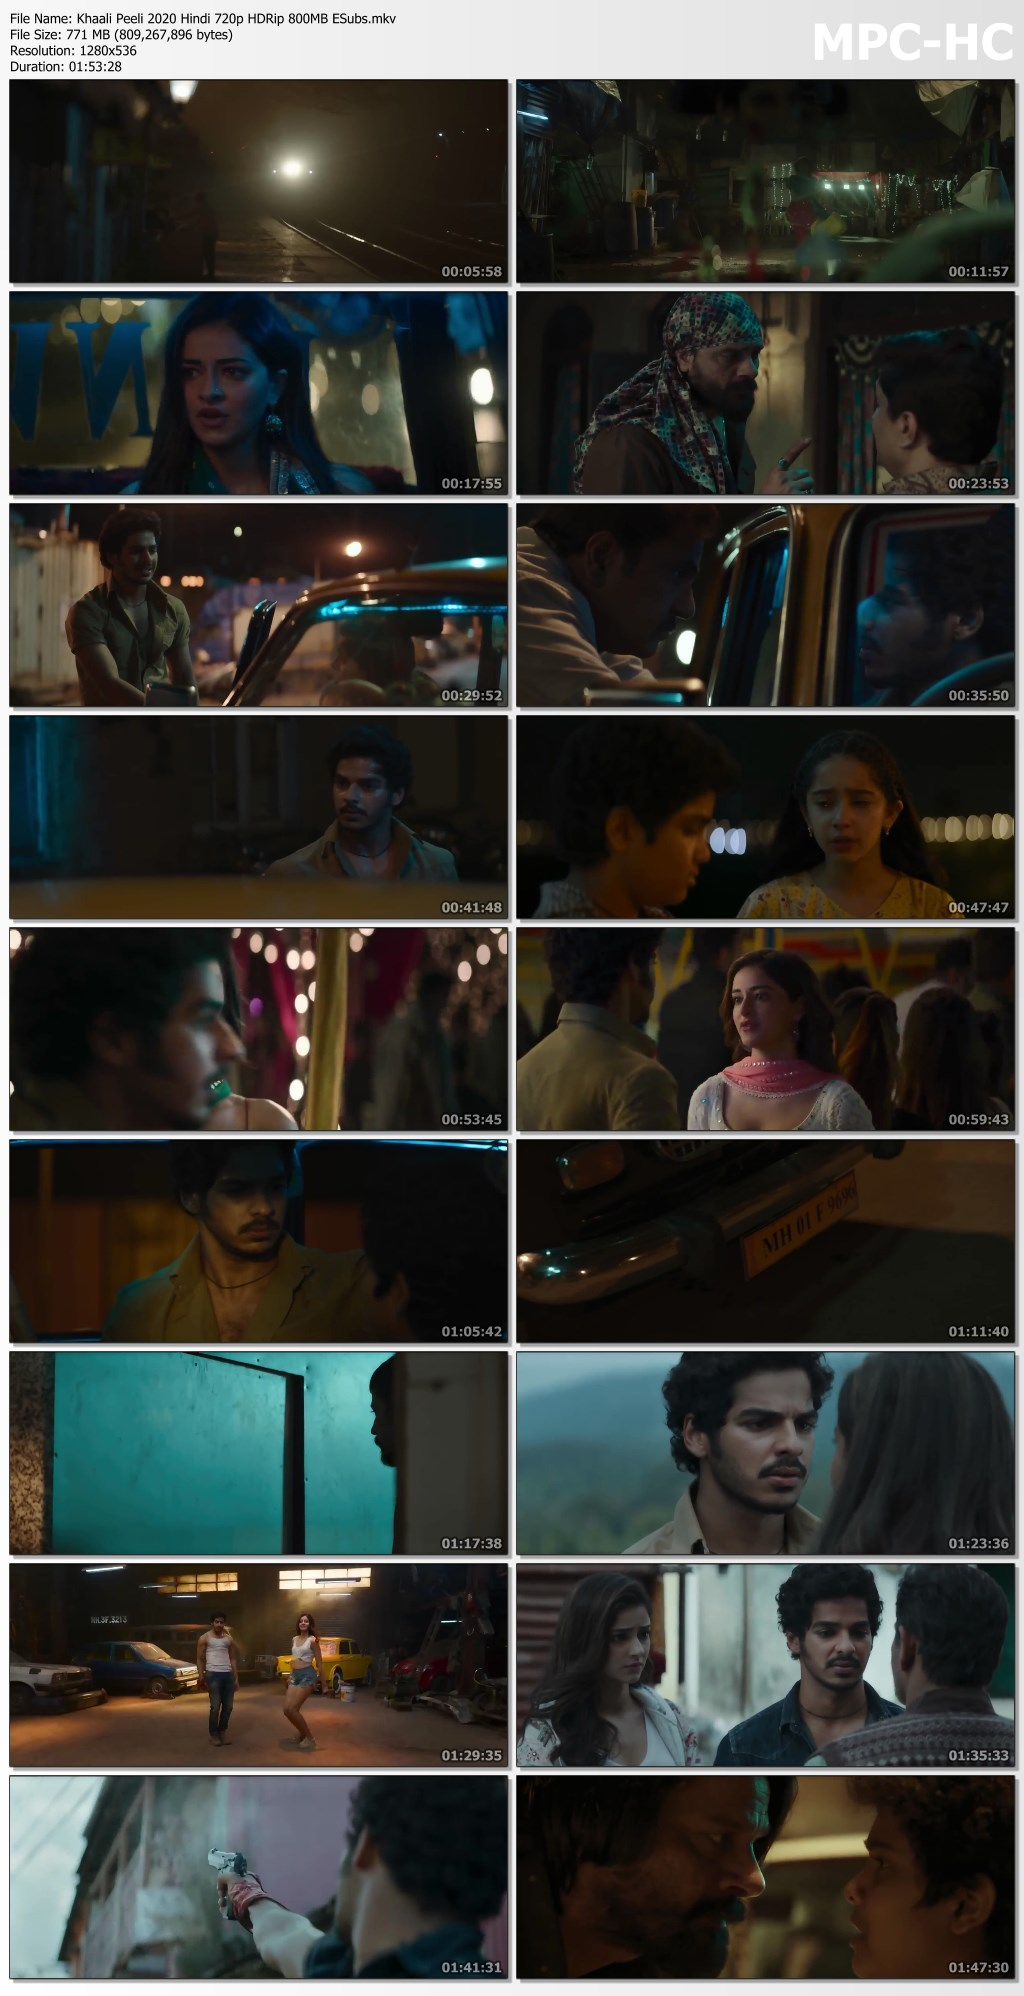 Khaali Peeli 2020 Hindi 720p HDRip 800MB ESubs.mkv thumbs